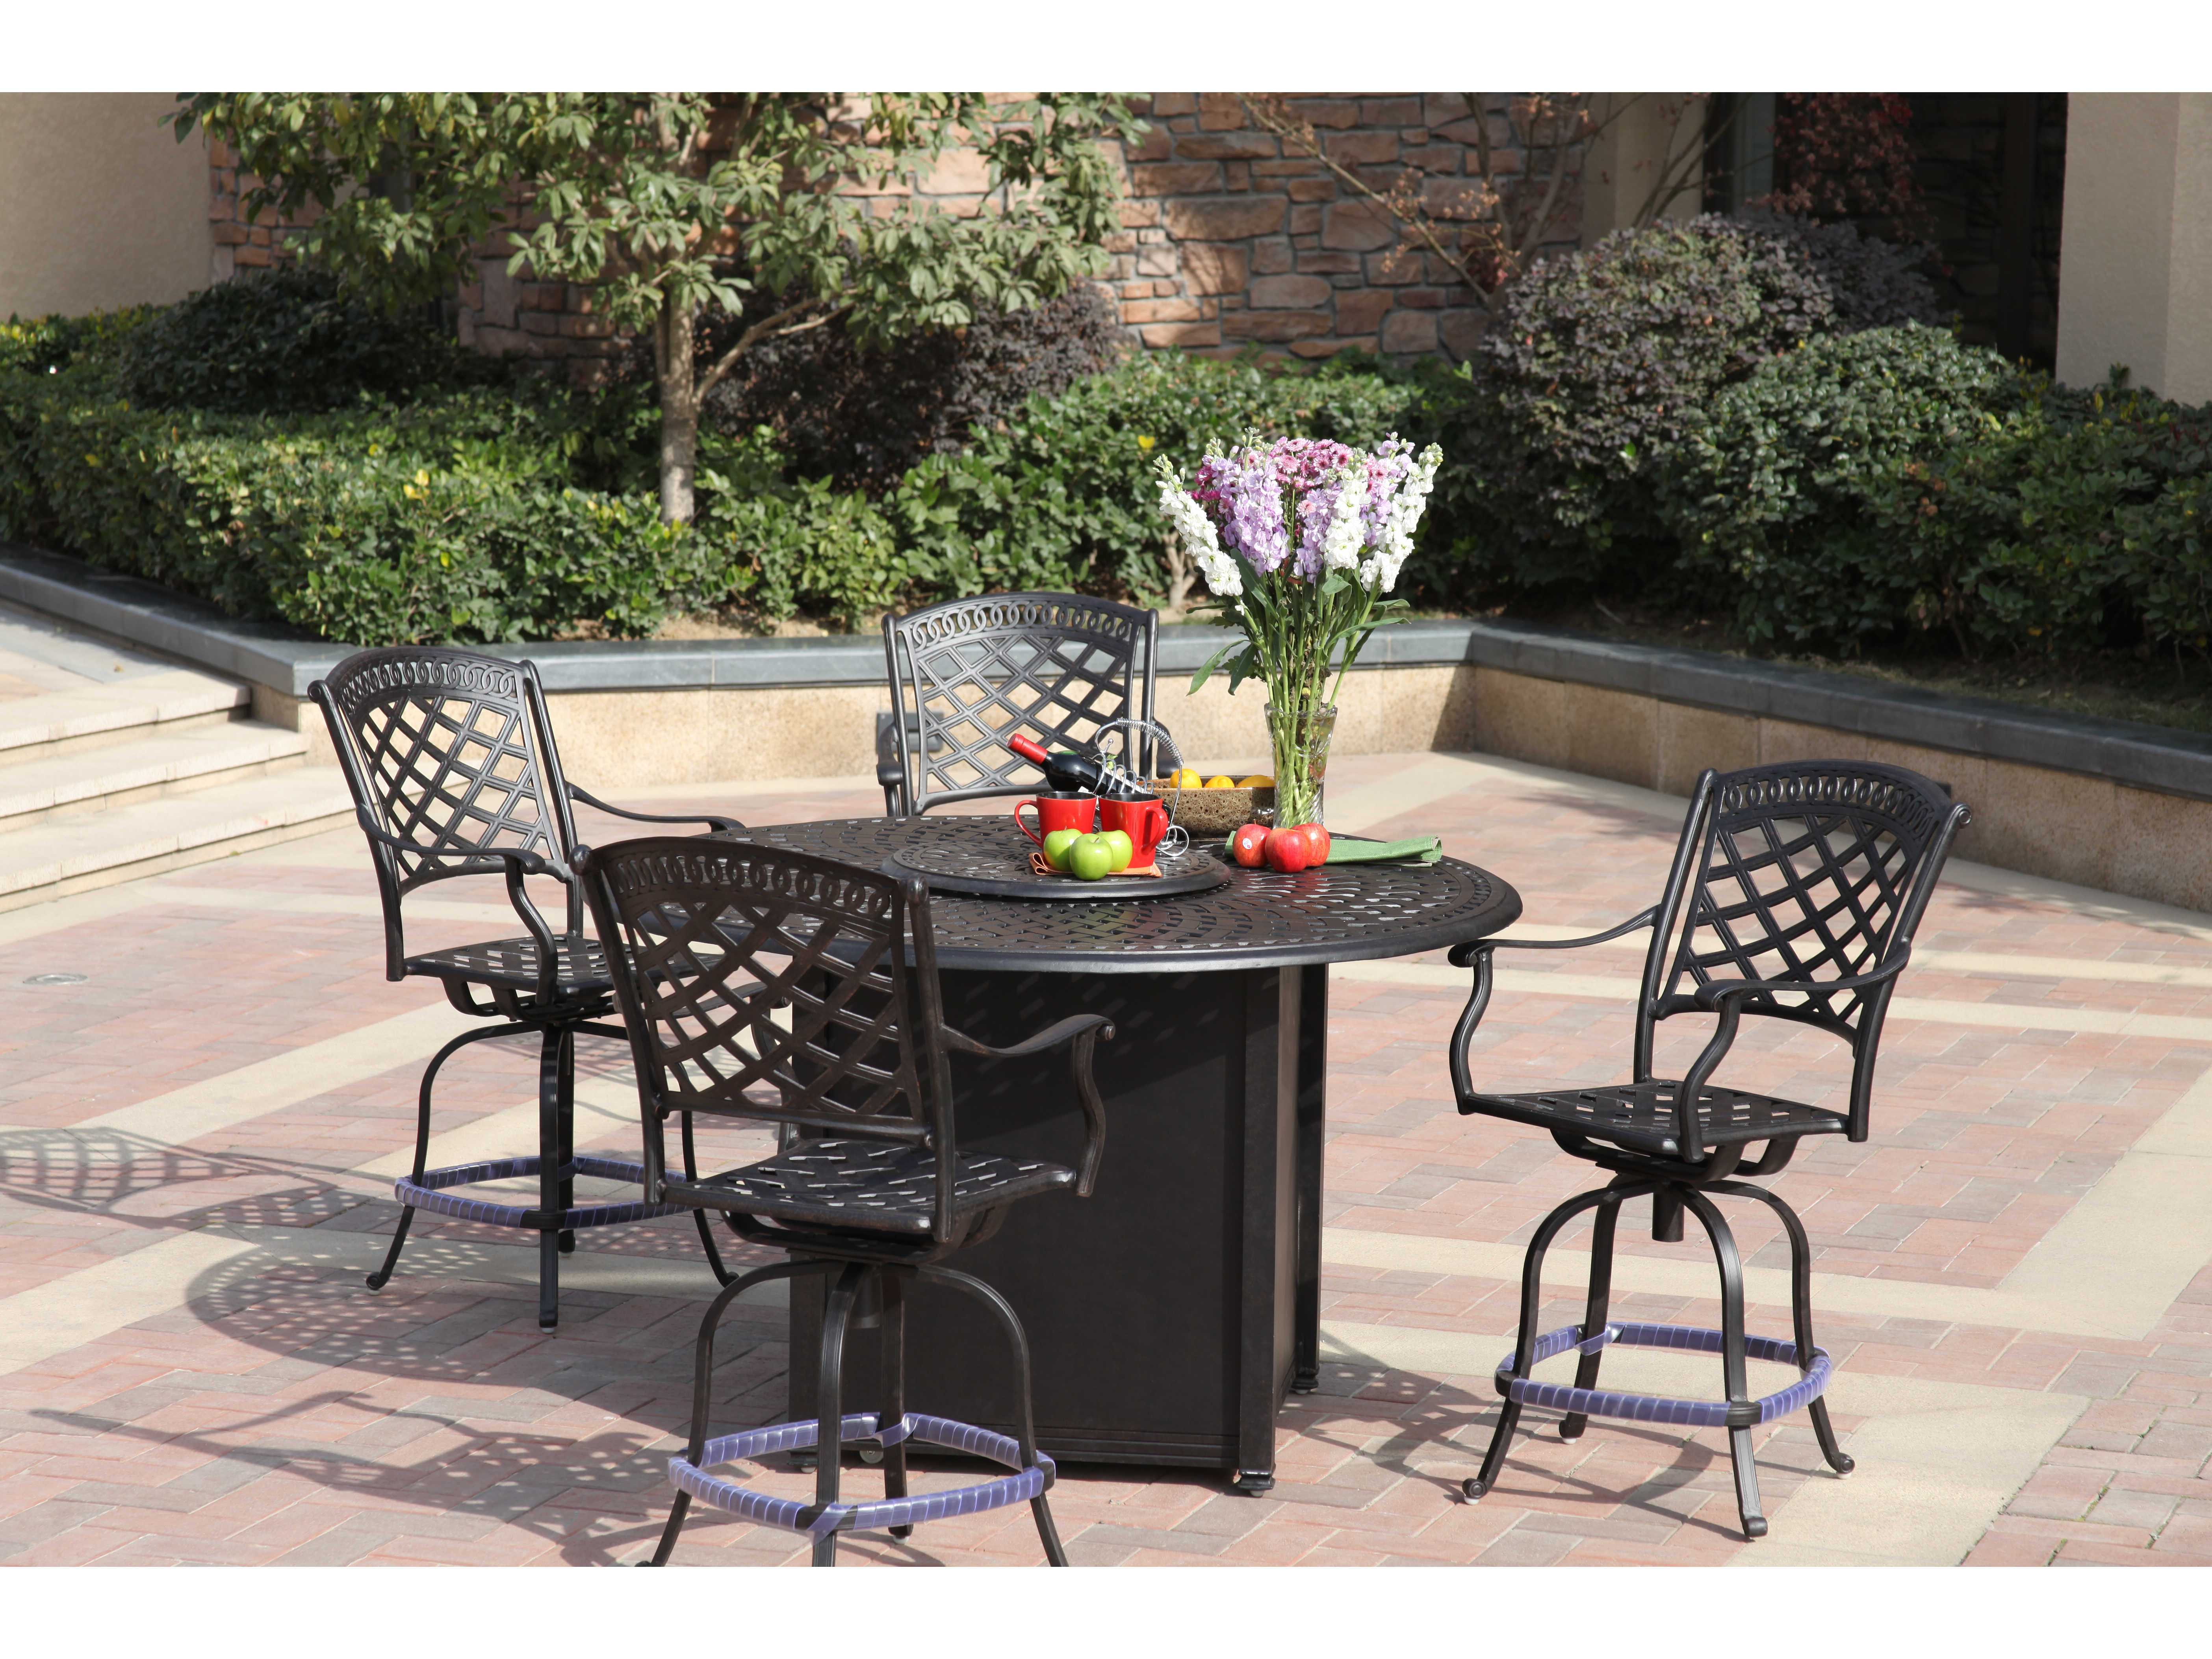 View · Darlee Outdoor Living Series 60 Cast Aluminum 60 Round Counter Height  Propane Fire Pit Table